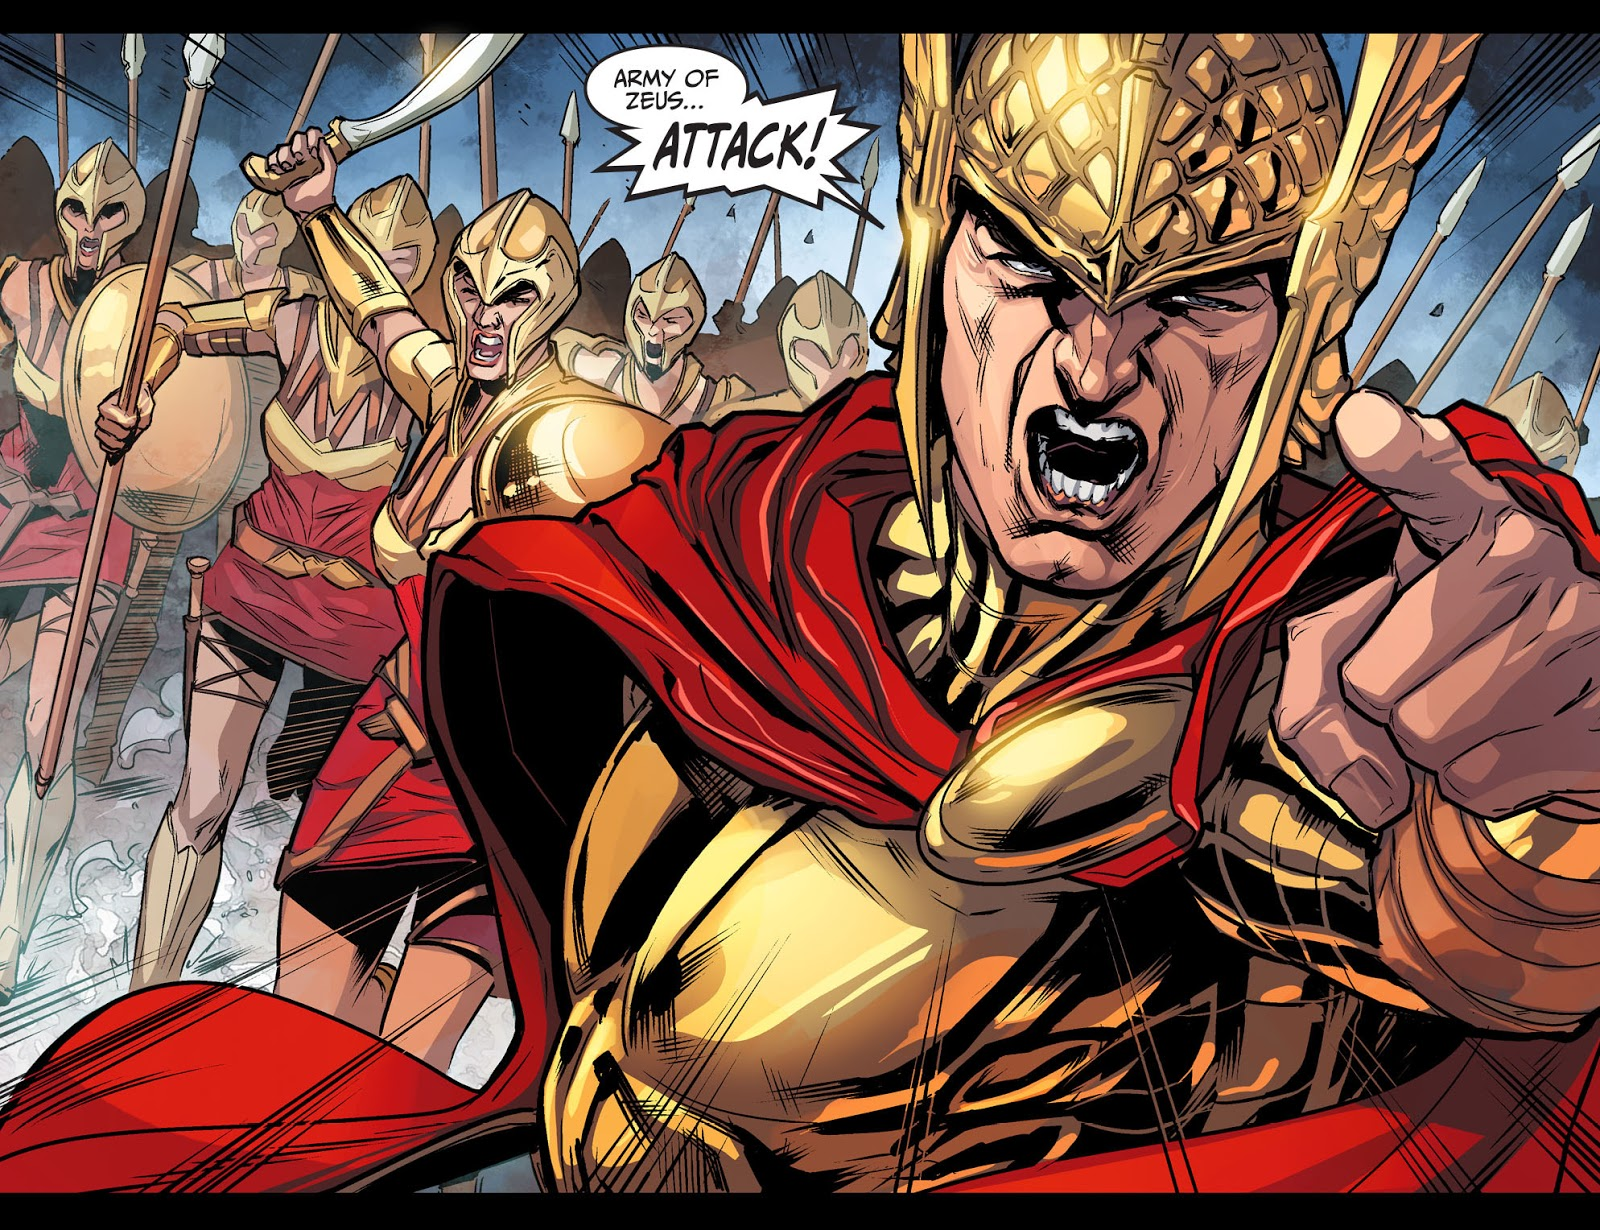 Hermes (Injustice)